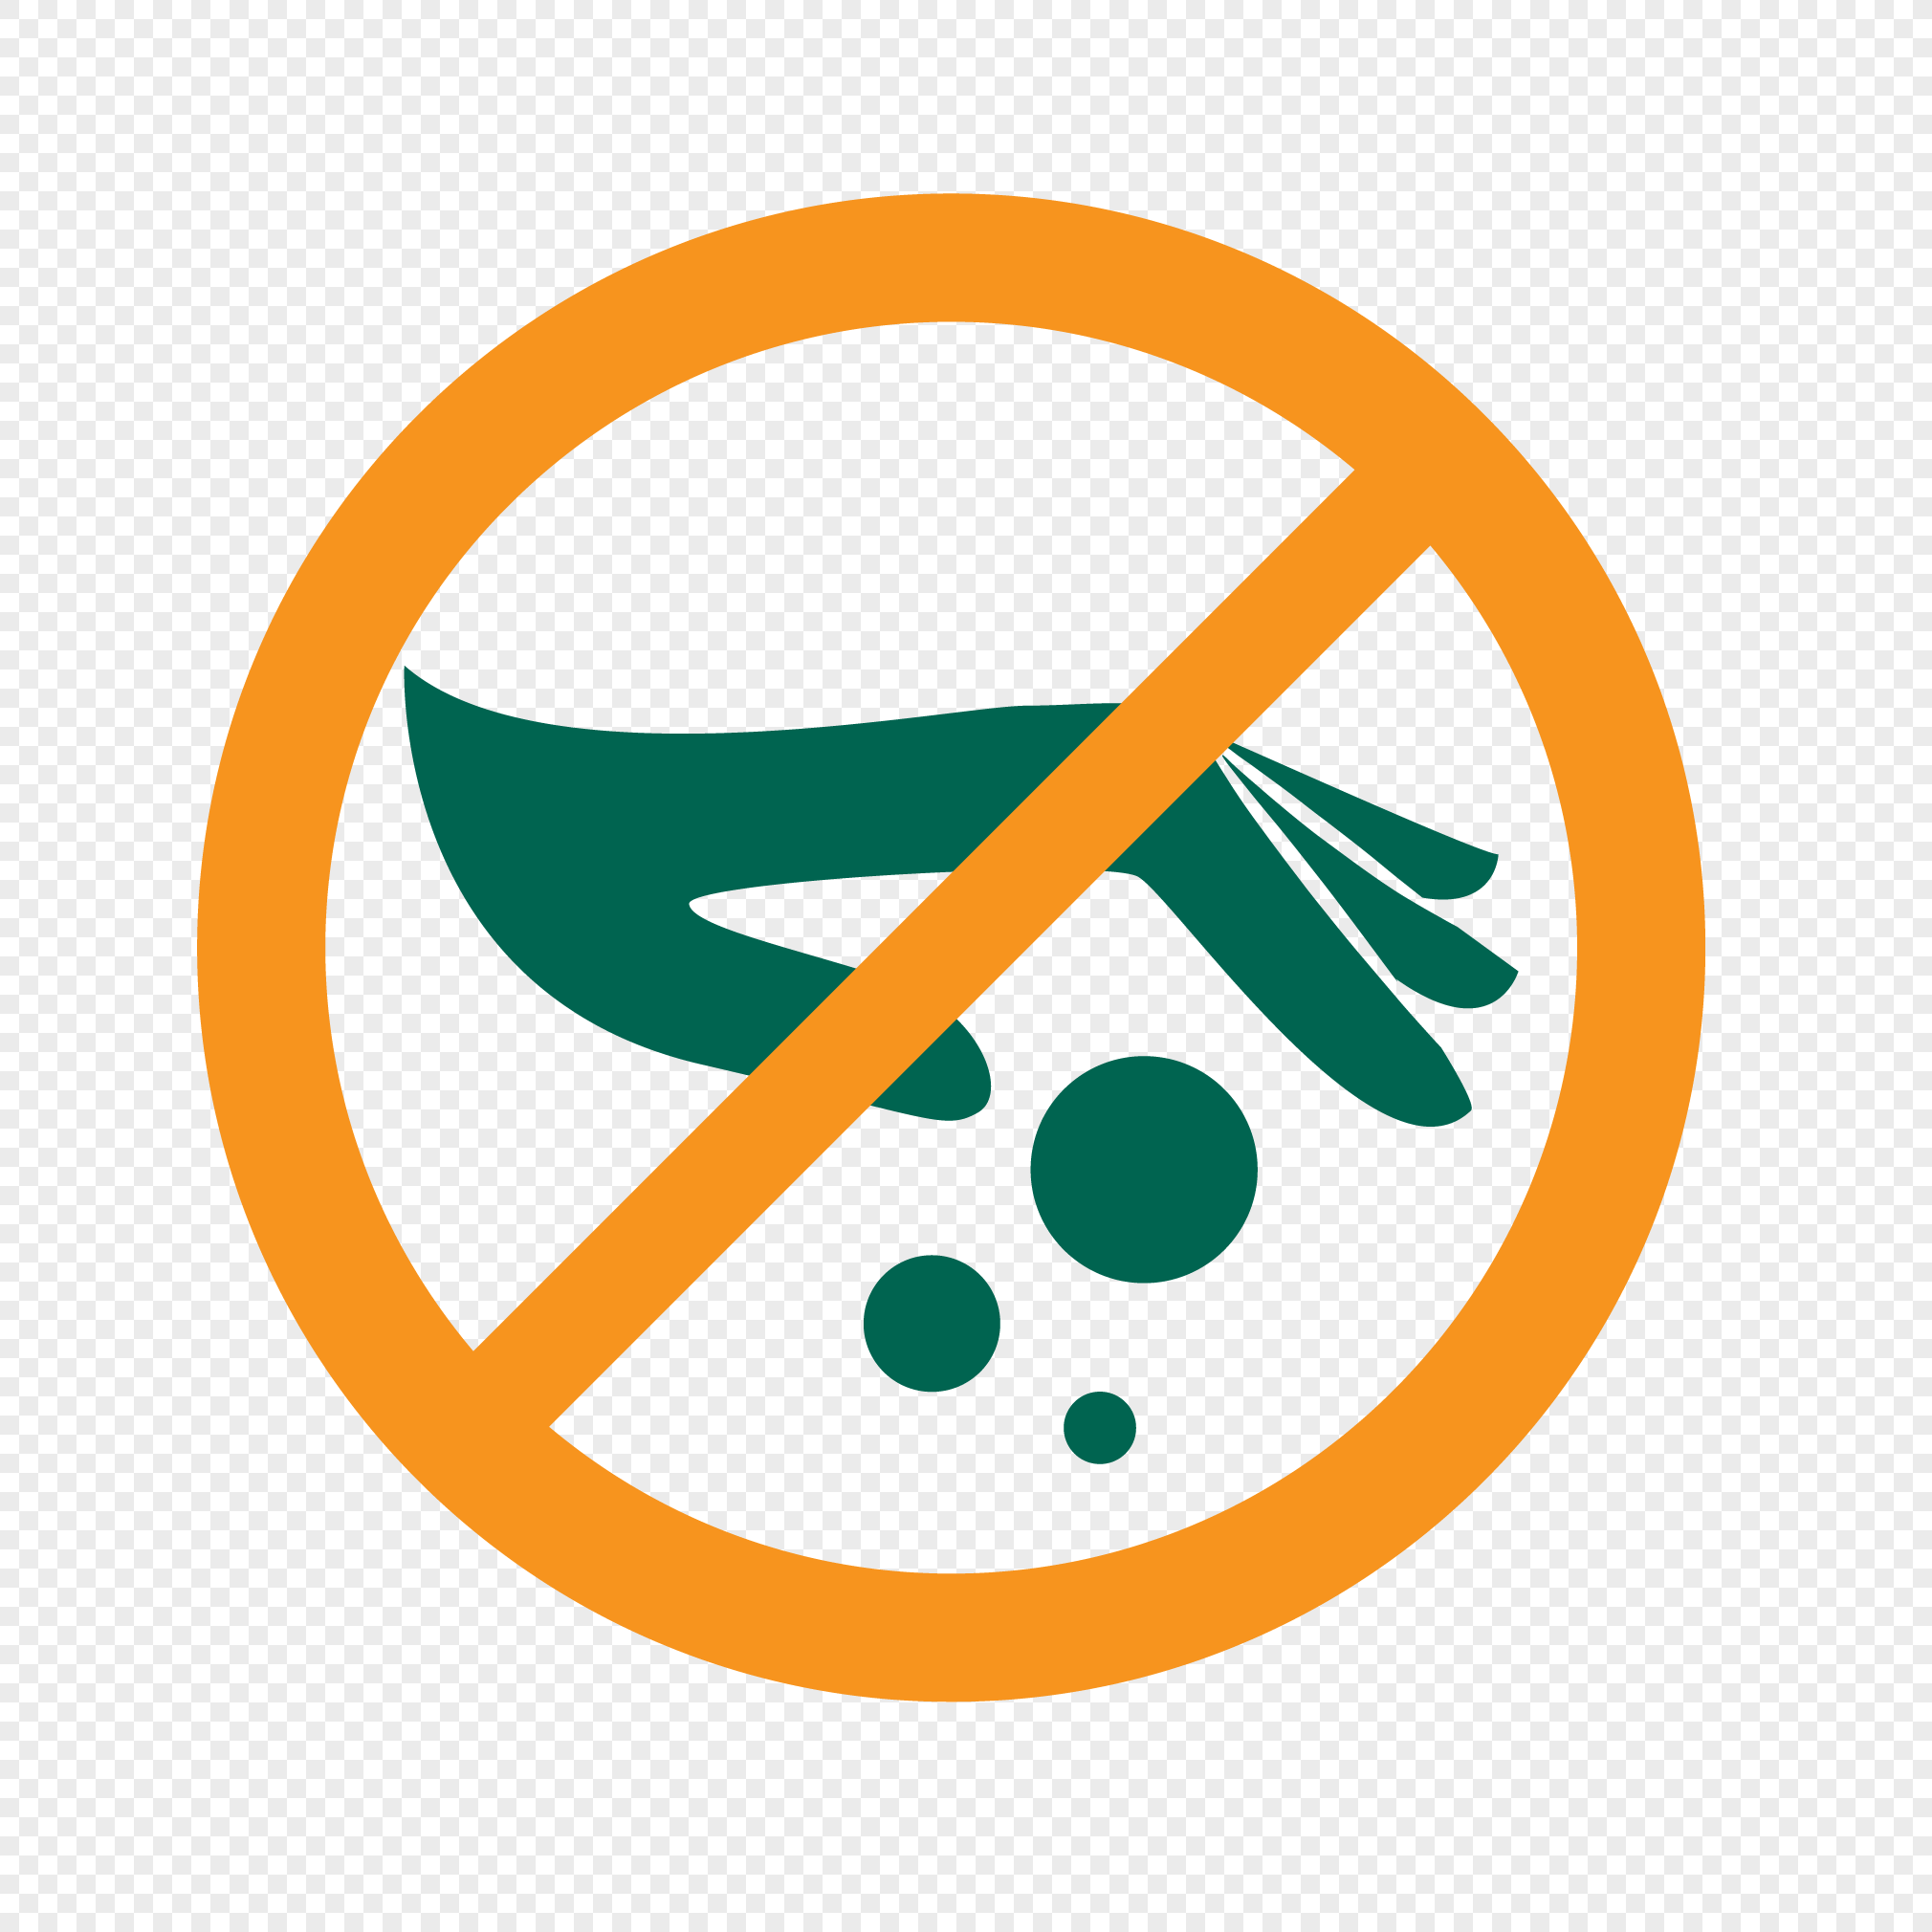 No Trash Icon Png Imagepicture Free Download 400671491lovepik